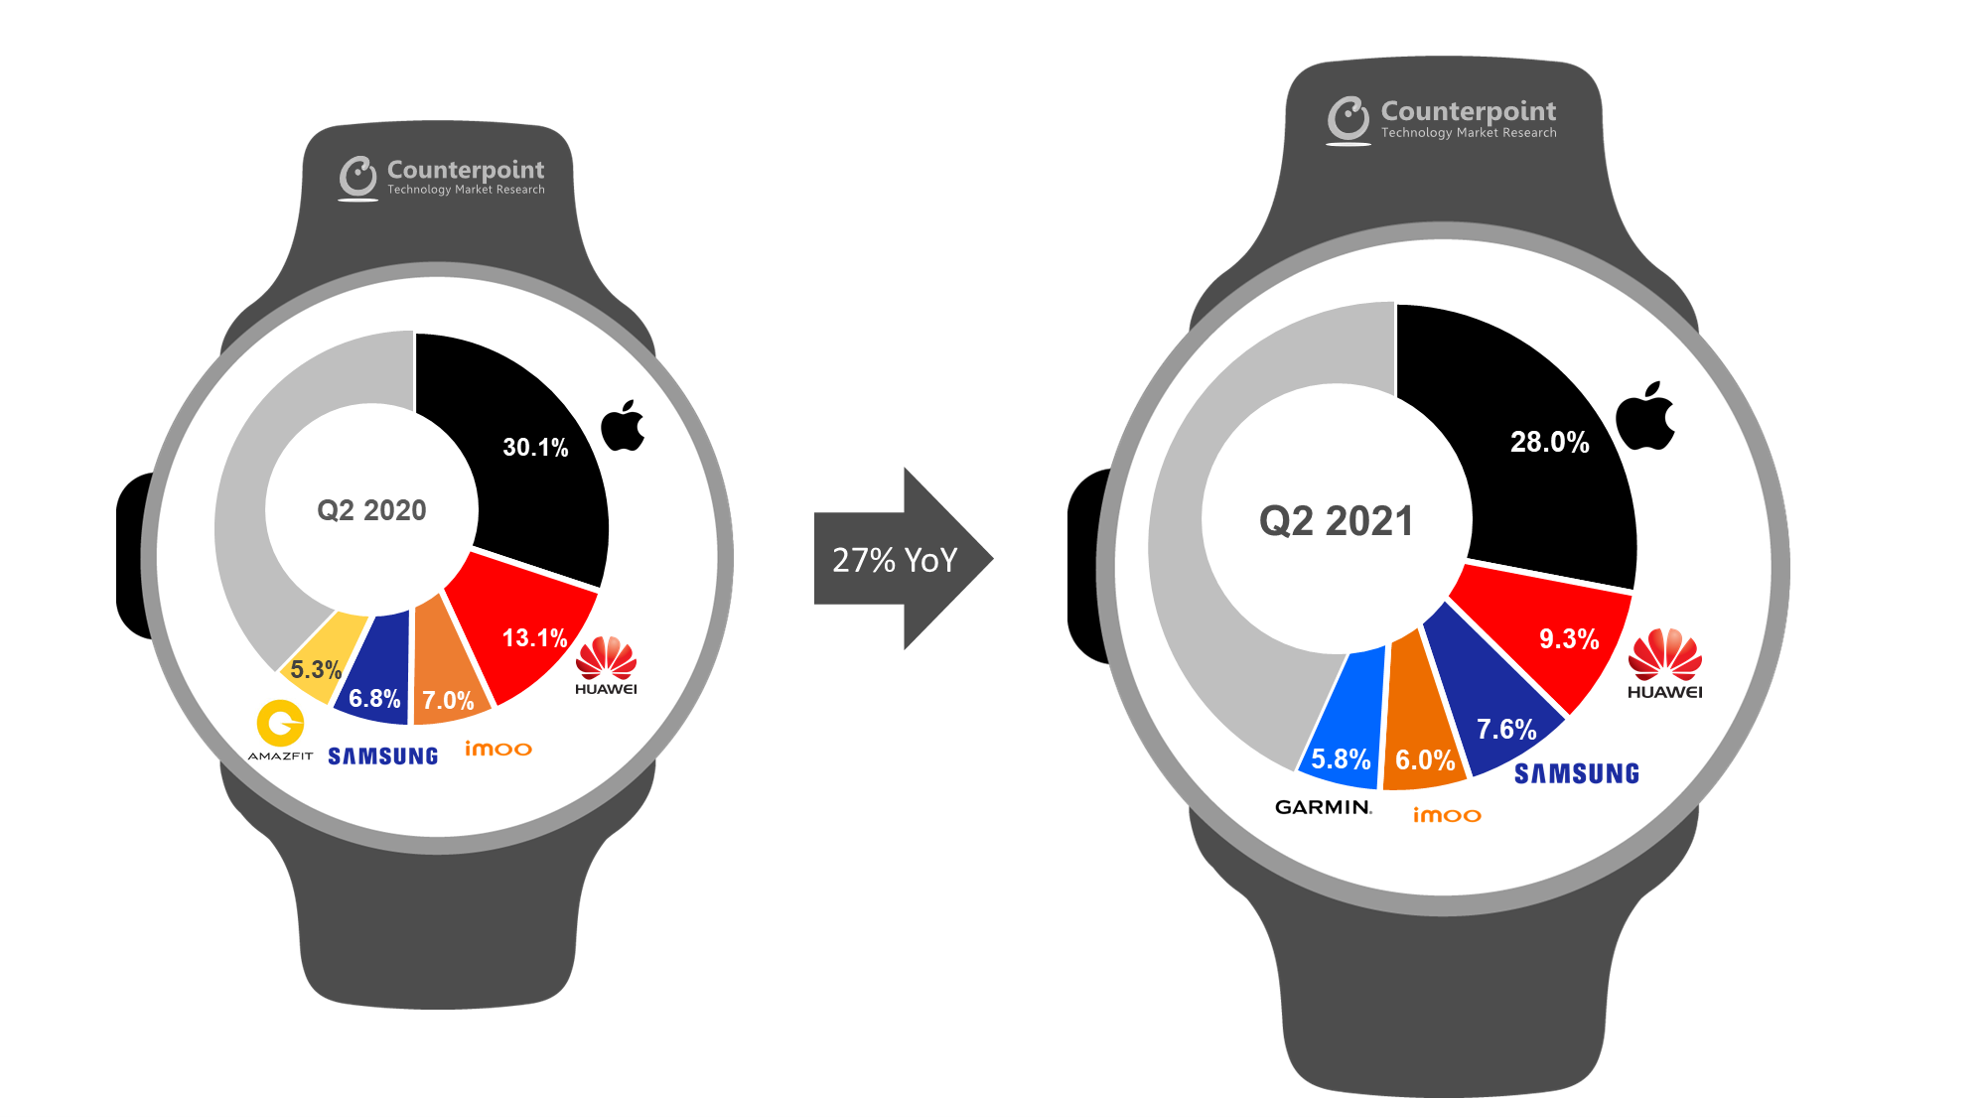 Counterpoint Research Shipments of Global Top 5 Smartwatch OEMs Q2 2021 vs Q2 2020